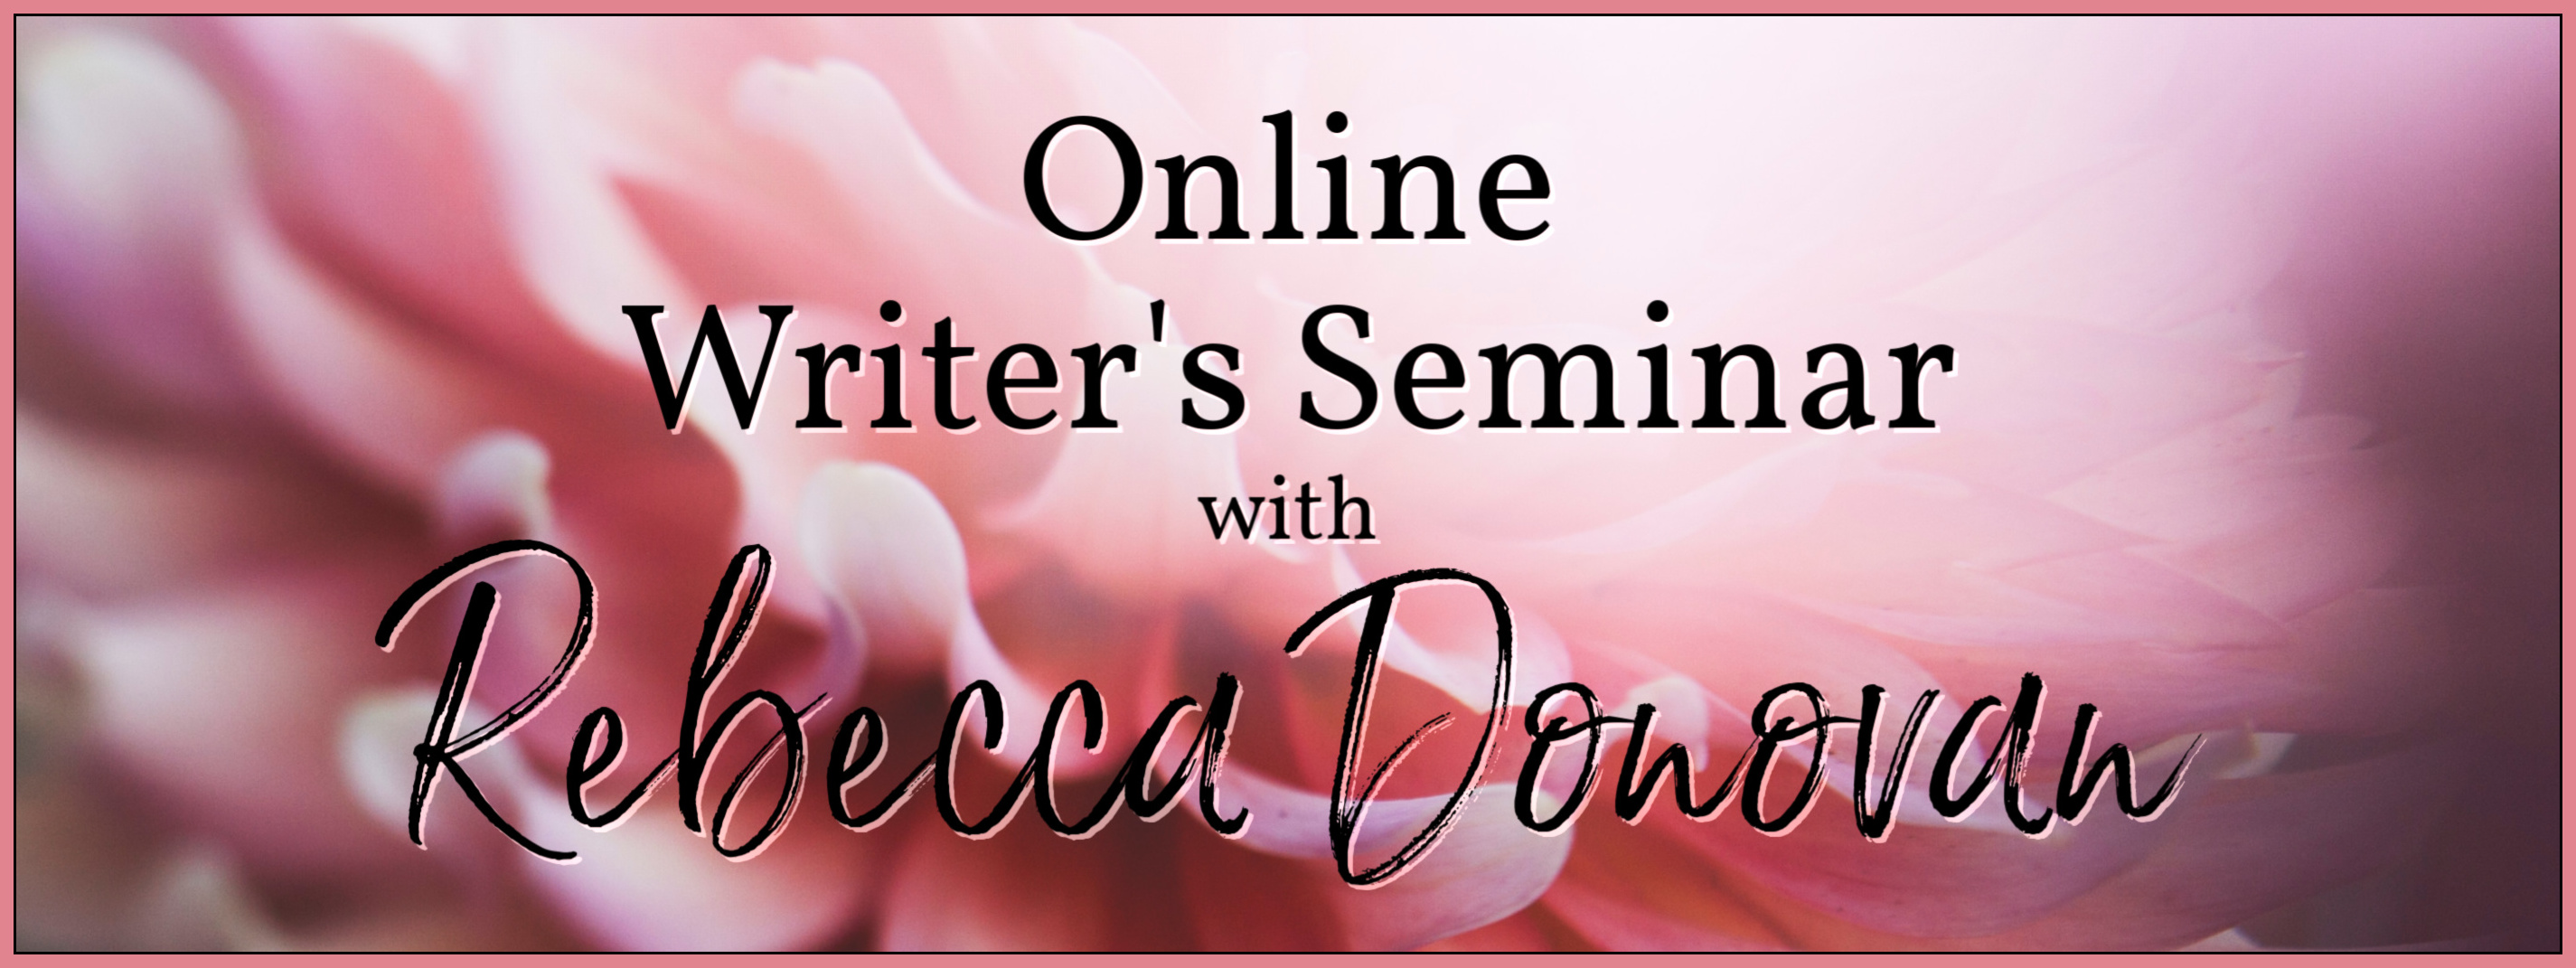 Online Writer's Seminar with Rebecca Donovan